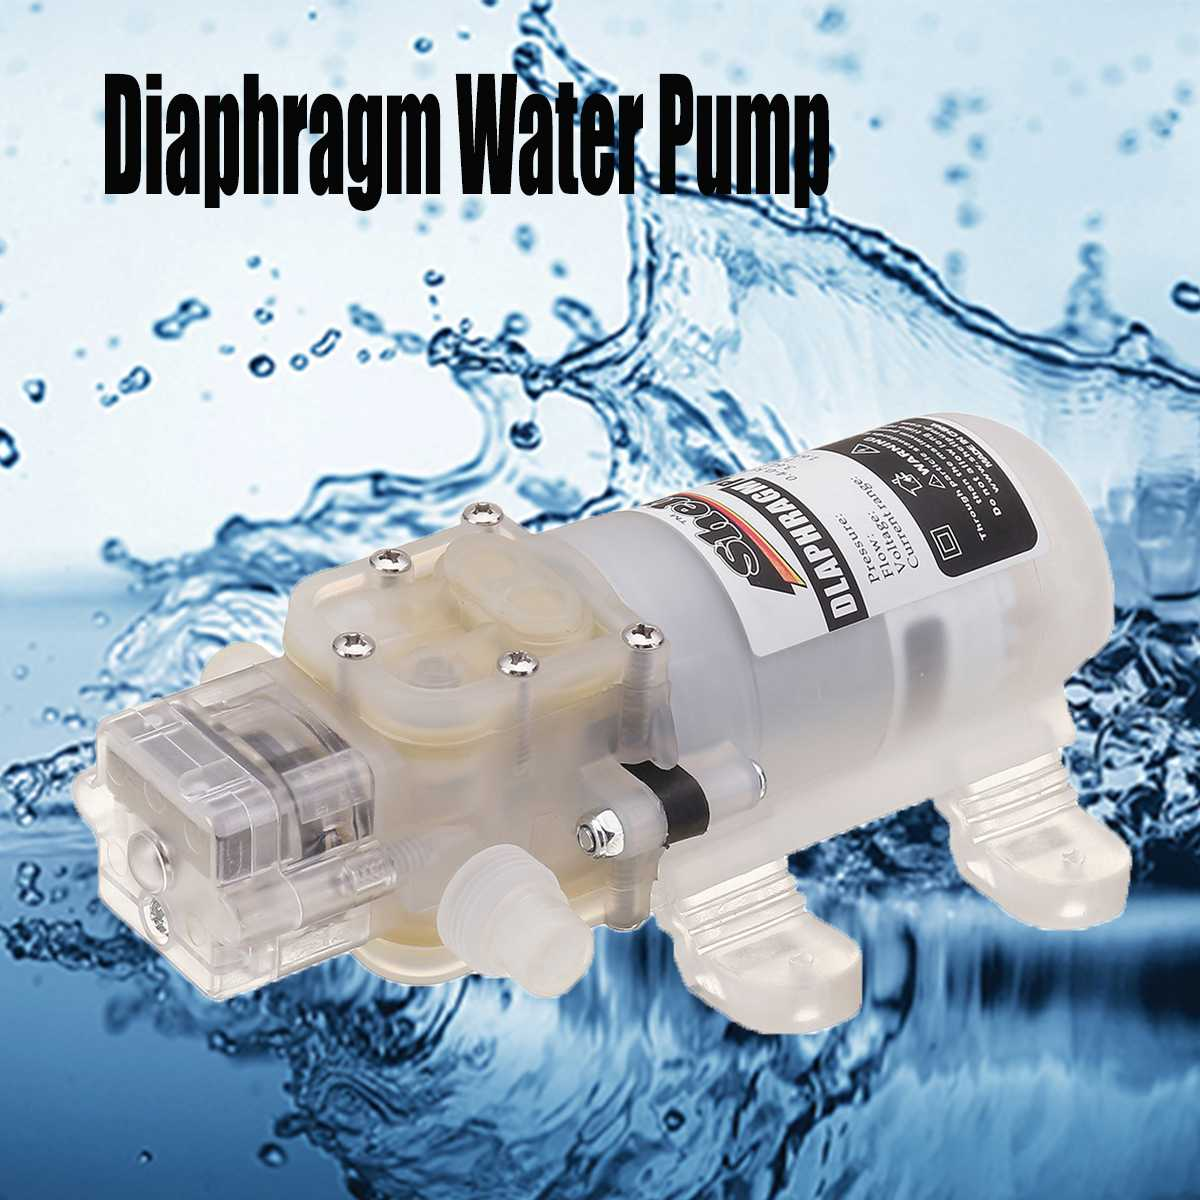 Electric DC 12V 4L/min Food Grade Self Priming Diaphragm Water Pump 30W/60W Auto-Switch for red wine drinking milk cooking oilElectric DC 12V 4L/min Food Grade Self Priming Diaphragm Water Pump 30W/60W Auto-Switch for red wine drinking milk cooking oil